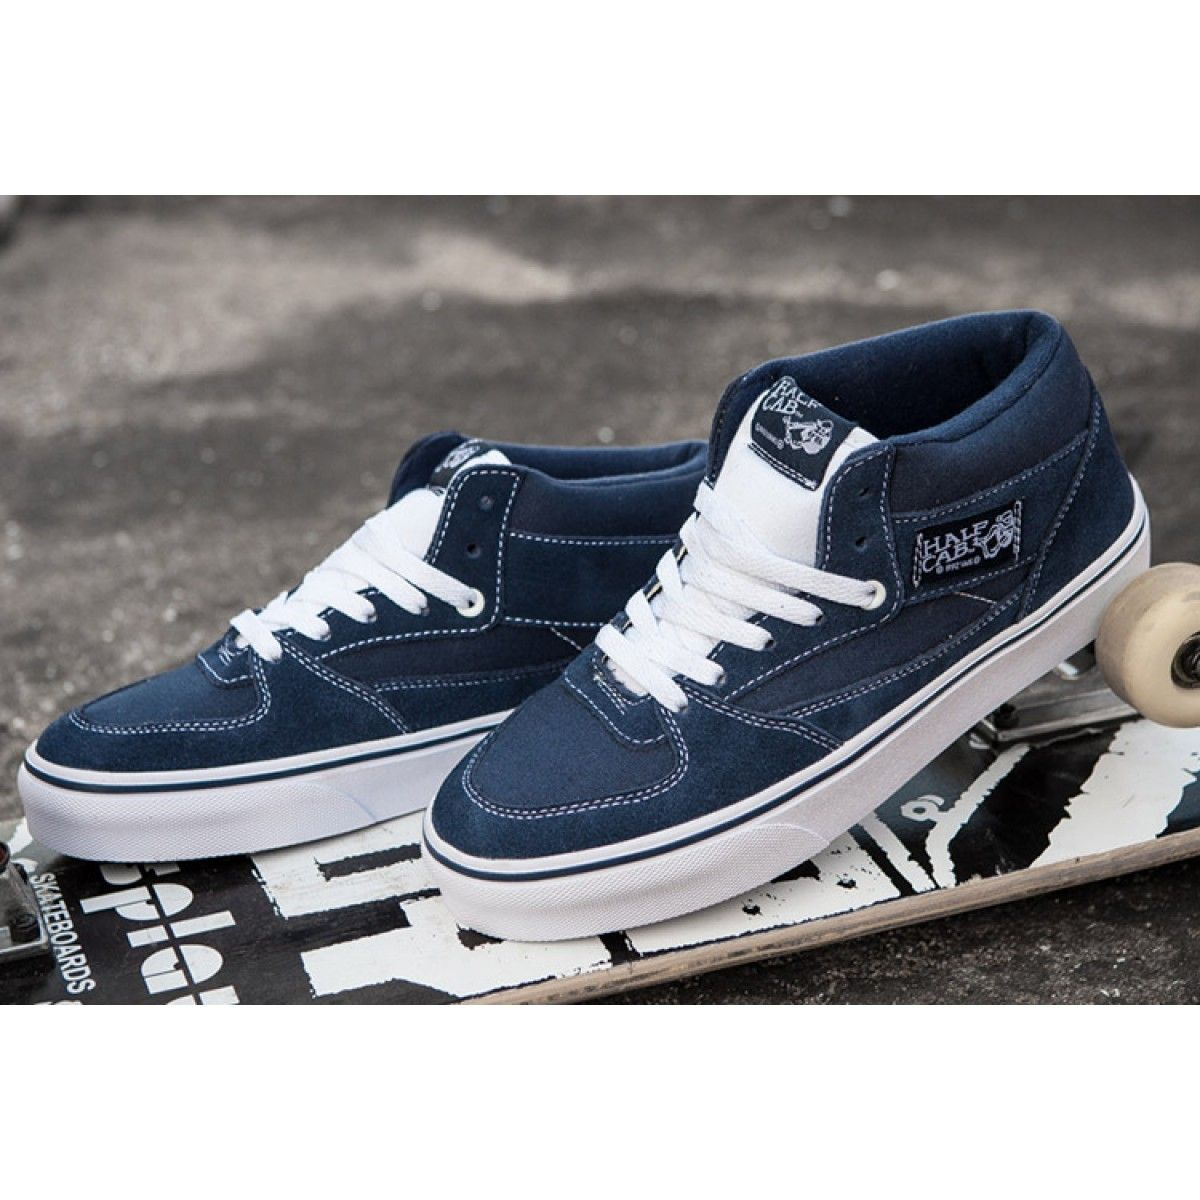 Vans Pro Skate Half Cab Street Knight Navy Blue Skateboard Shoes  Vans c1923329b